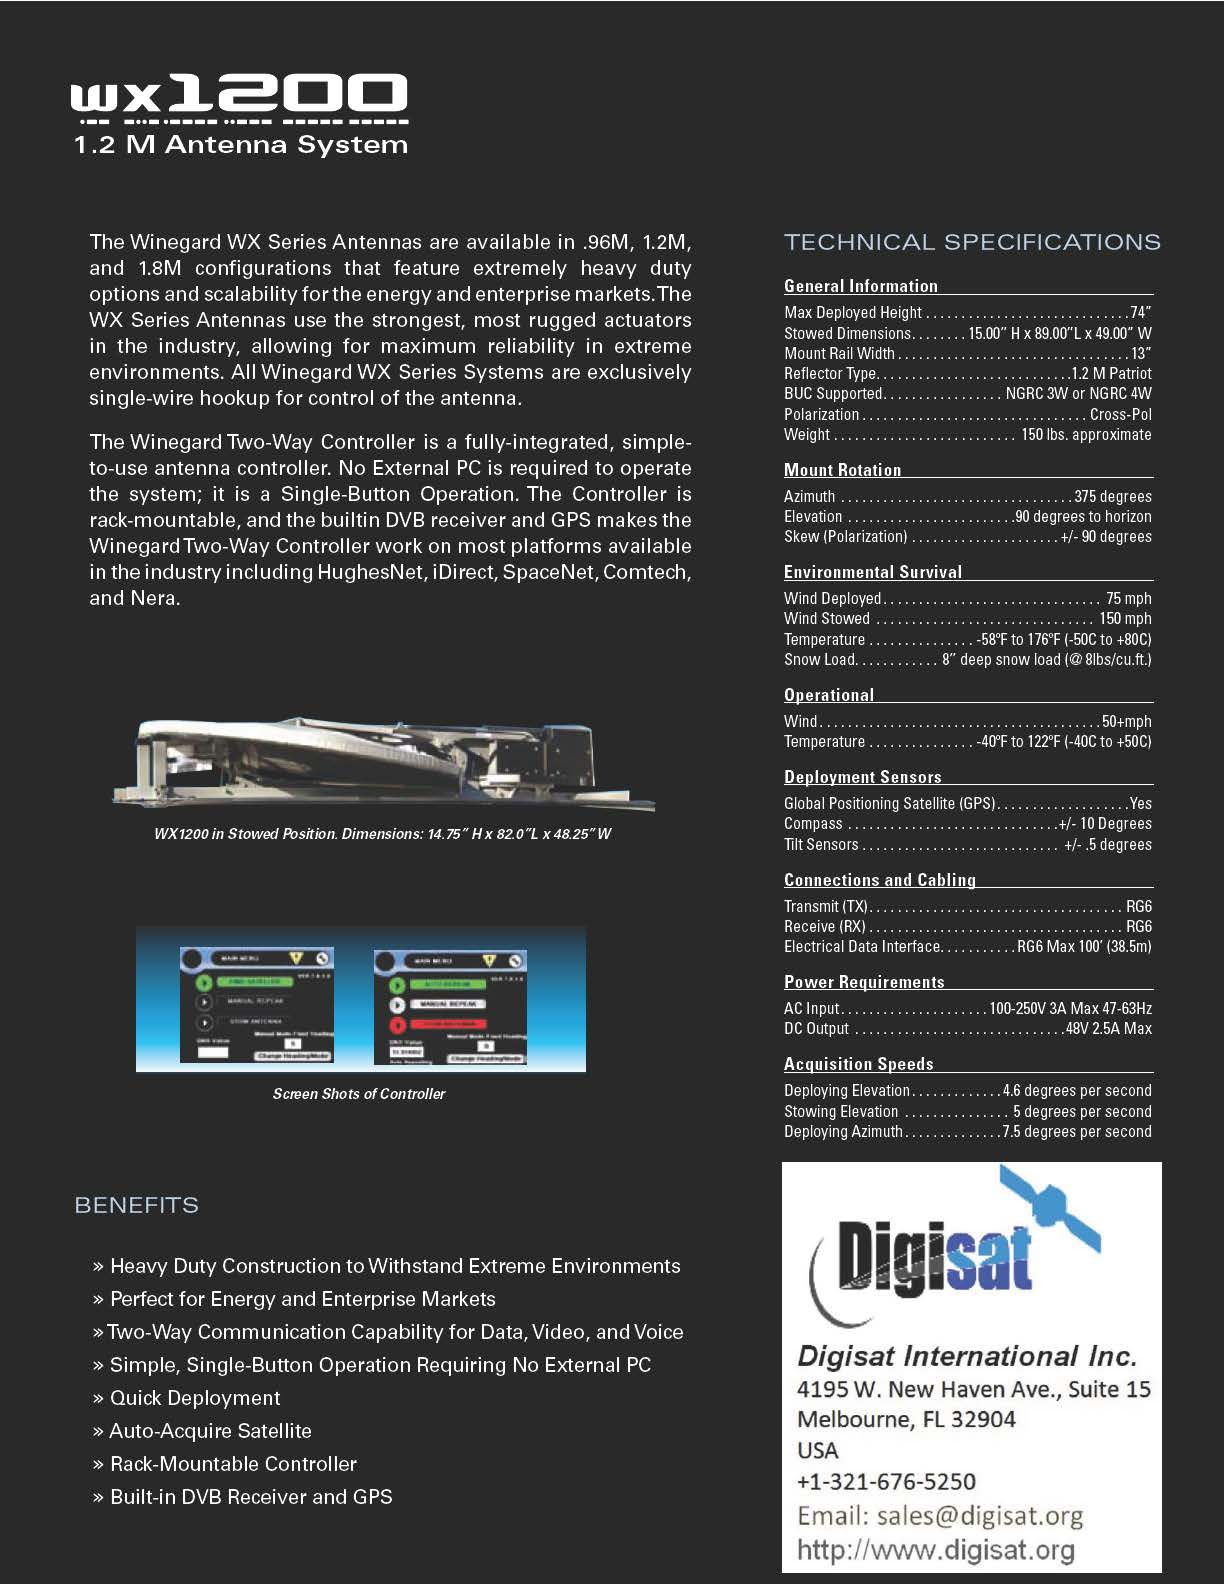 Winegard WX1200 technical details